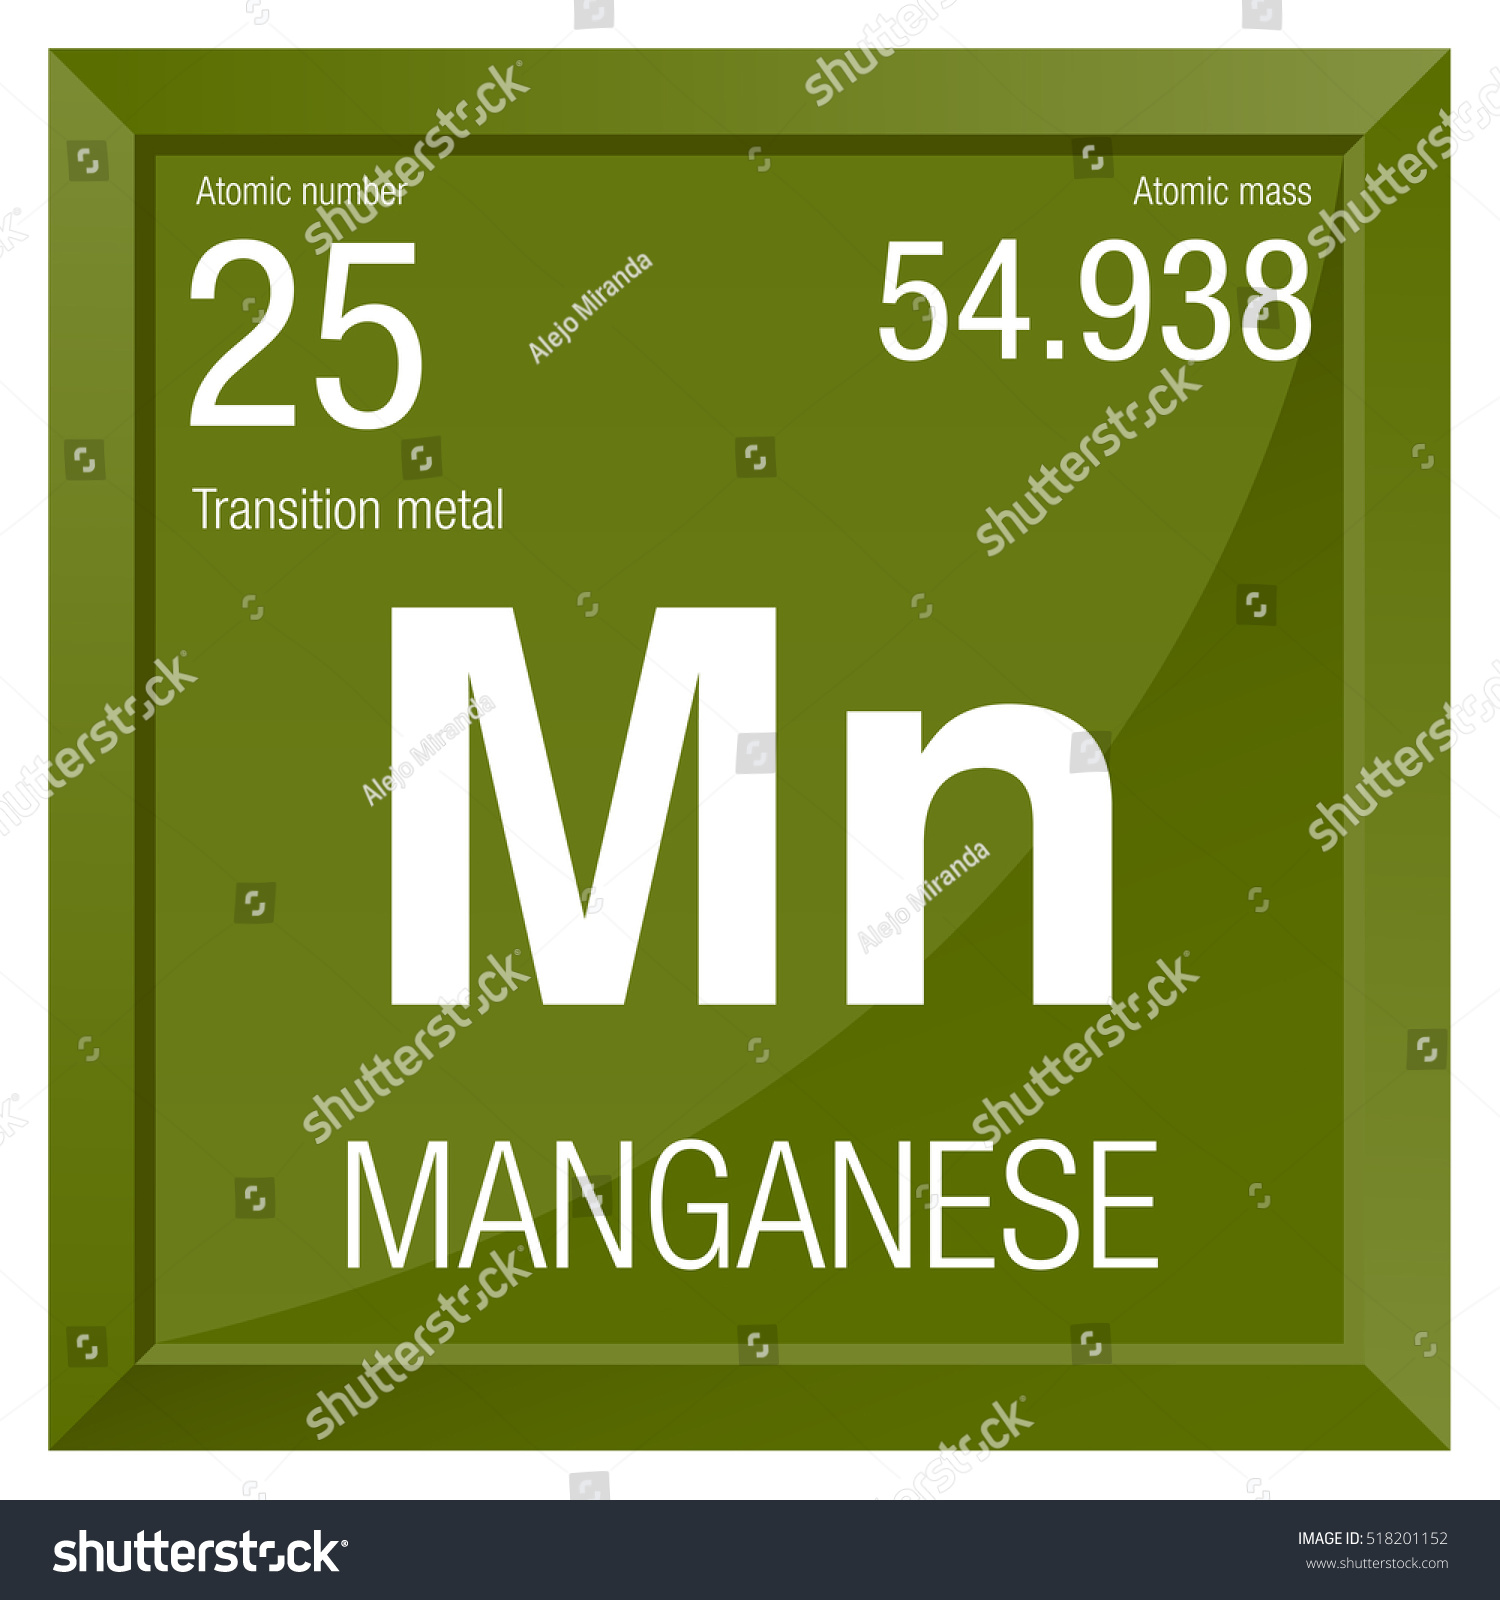 Manganese symbol element number 25 periodic stock vector 518201152 manganese symbol element number 25 of the periodic table of the elements chemistry gamestrikefo Images